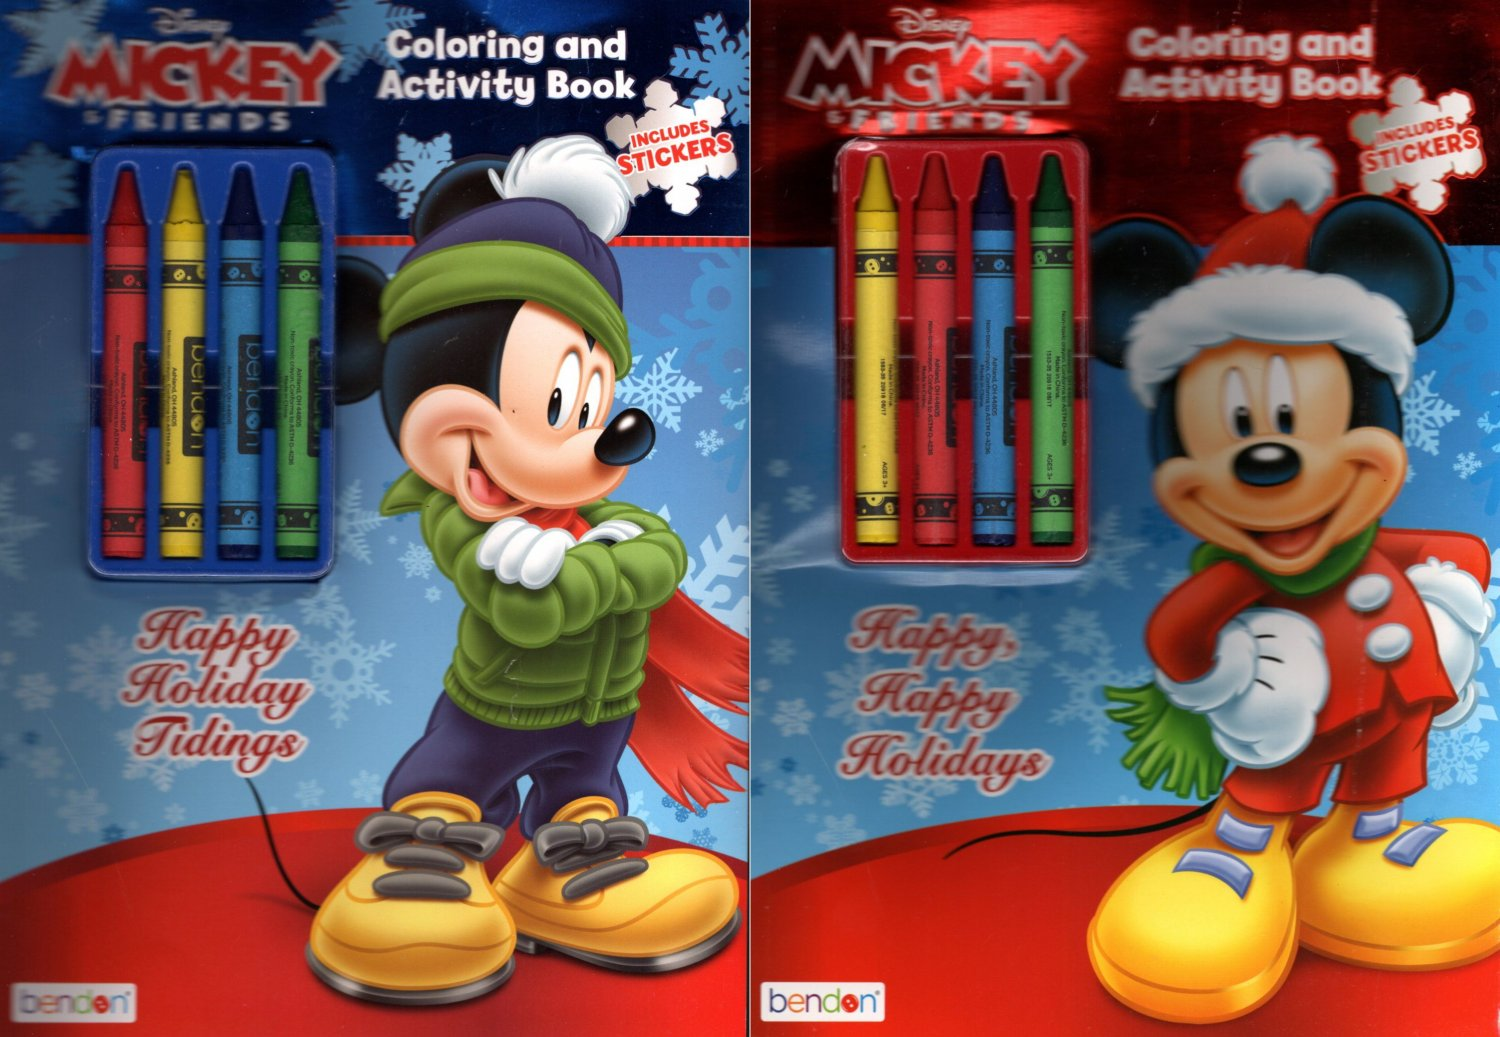 Disney Mickey - Christmas Edition Holiday - Coloring & Activity Book - Includes Stickers Set of 2